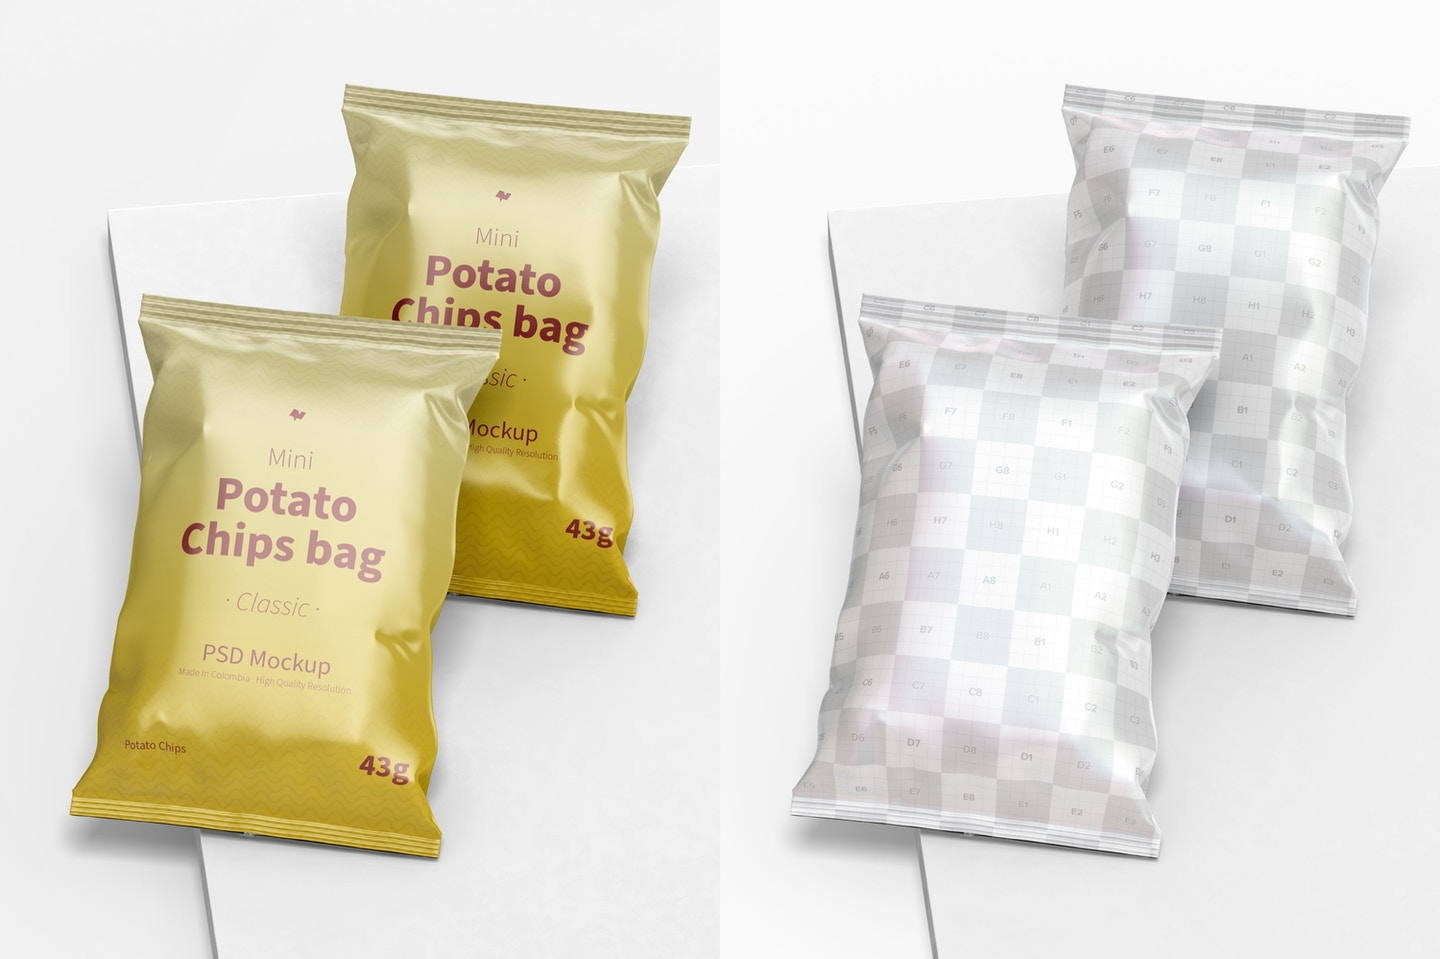 Glossy Mini Potato Chips Bags Mockup, Perspective View